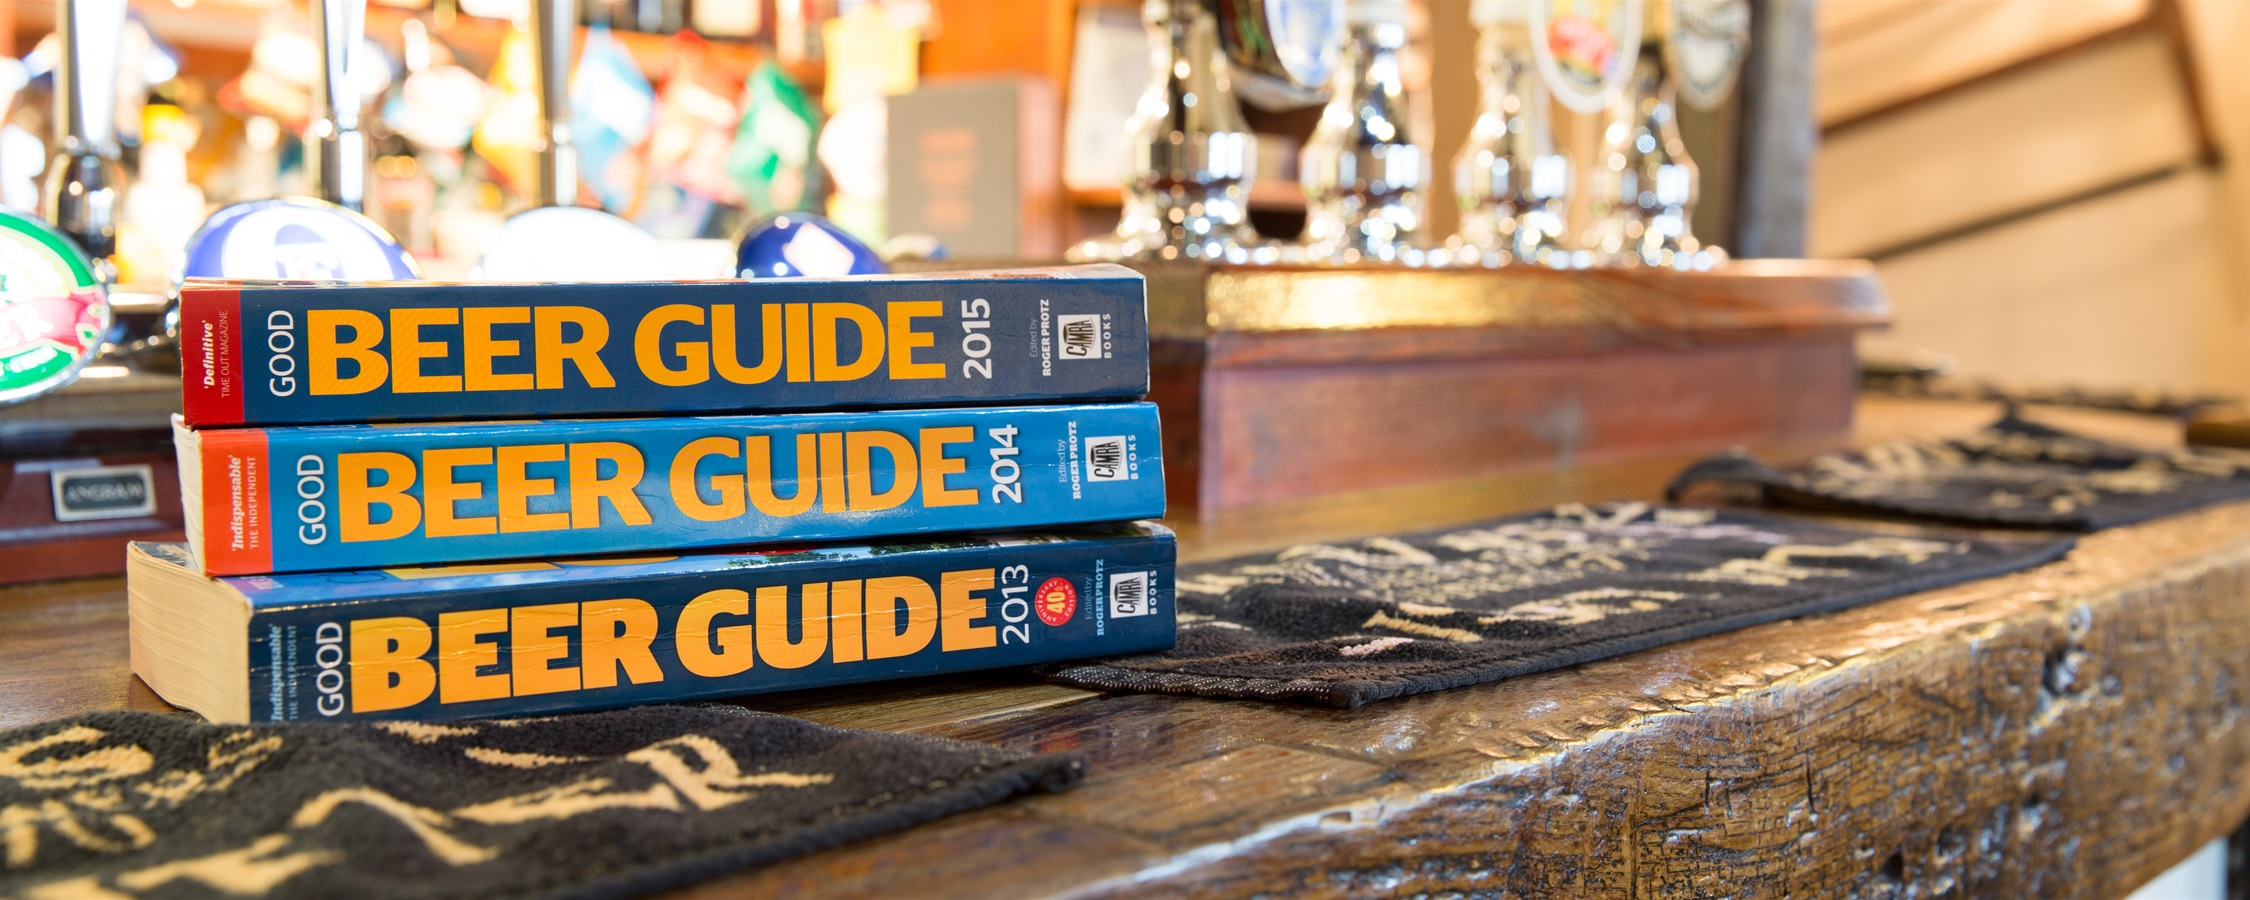 CAMRA's Good Beer Guide - We're in it!... Since 2010